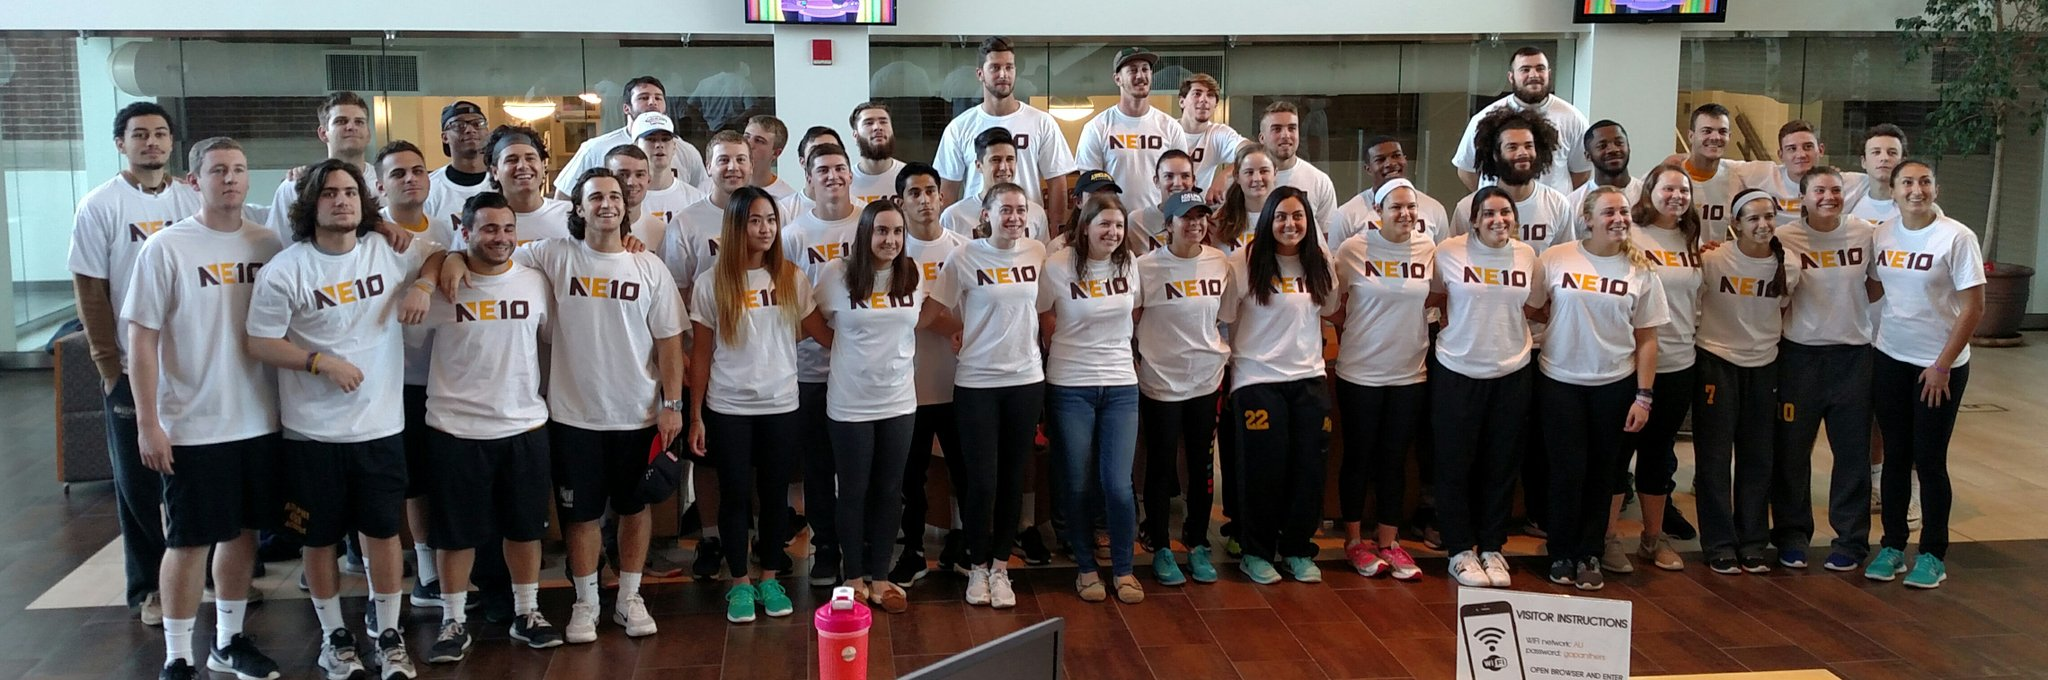 Proud to represent the @TheNortheast10 as an @AdelphiXCTrack & @AdelphiU student-athletes! #NE10Embrace @AUPanthers https://t.co/jSVCKuejUW